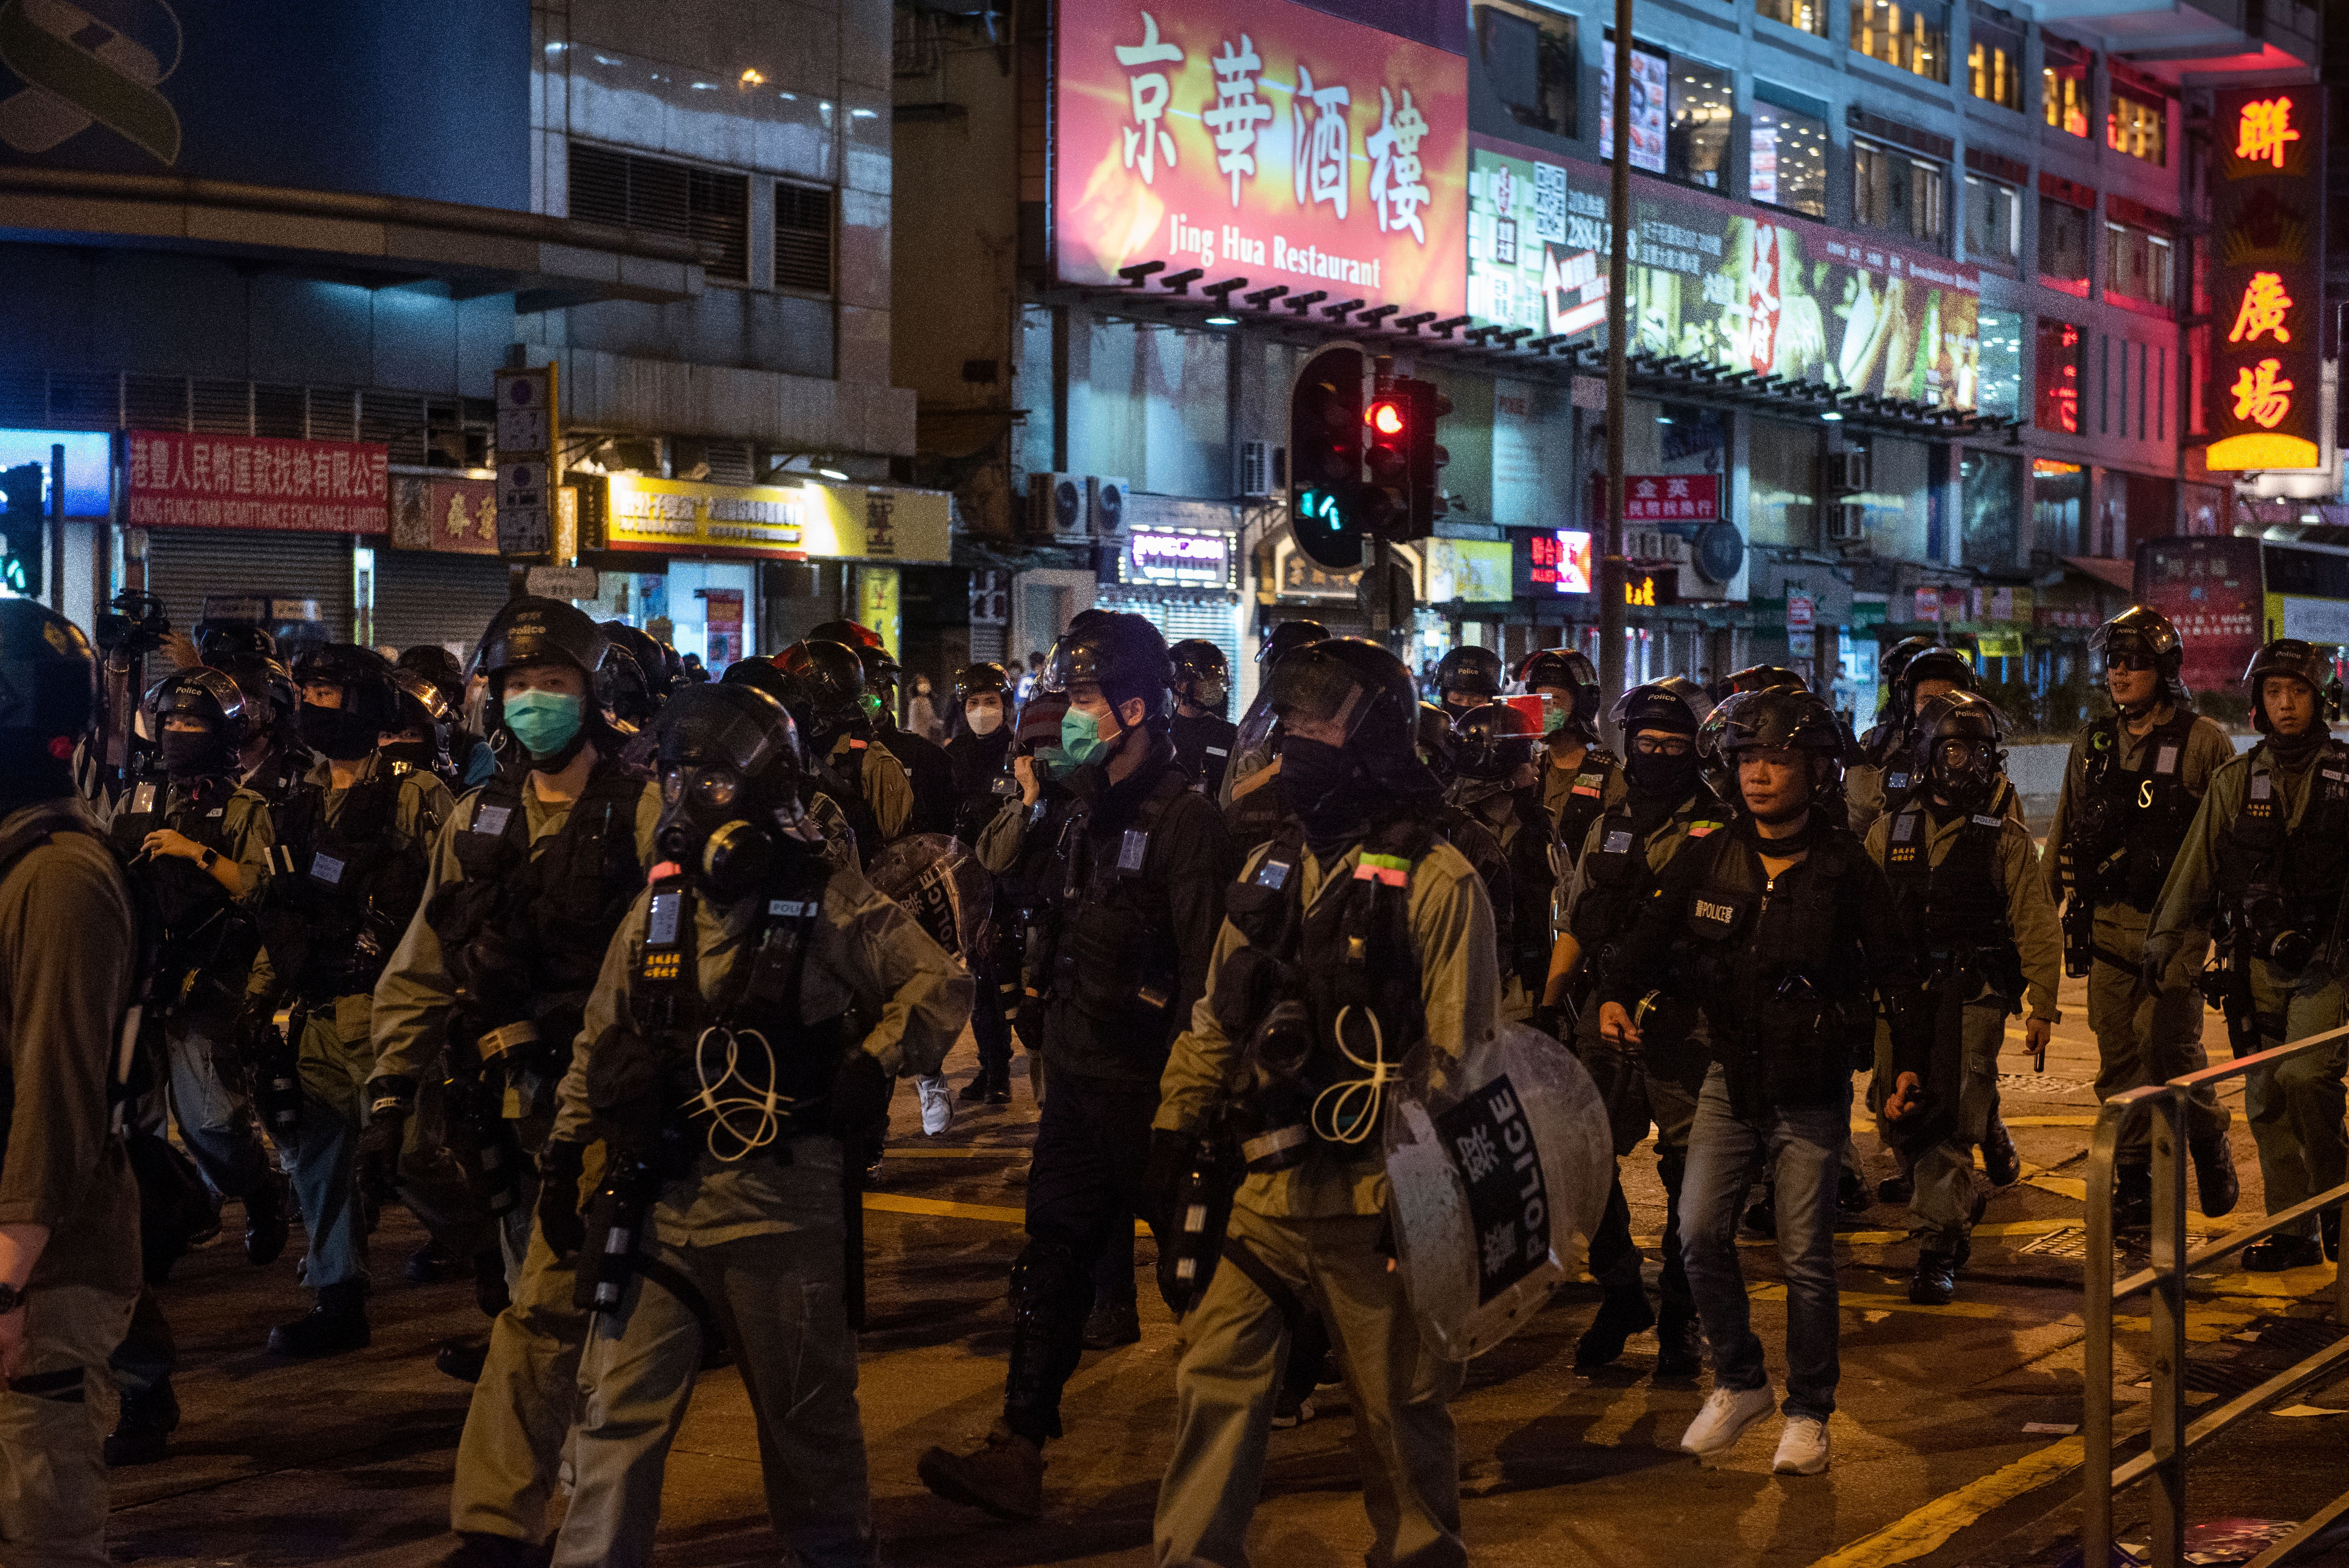 Riot police sent in to disperse protesters over the weekend.